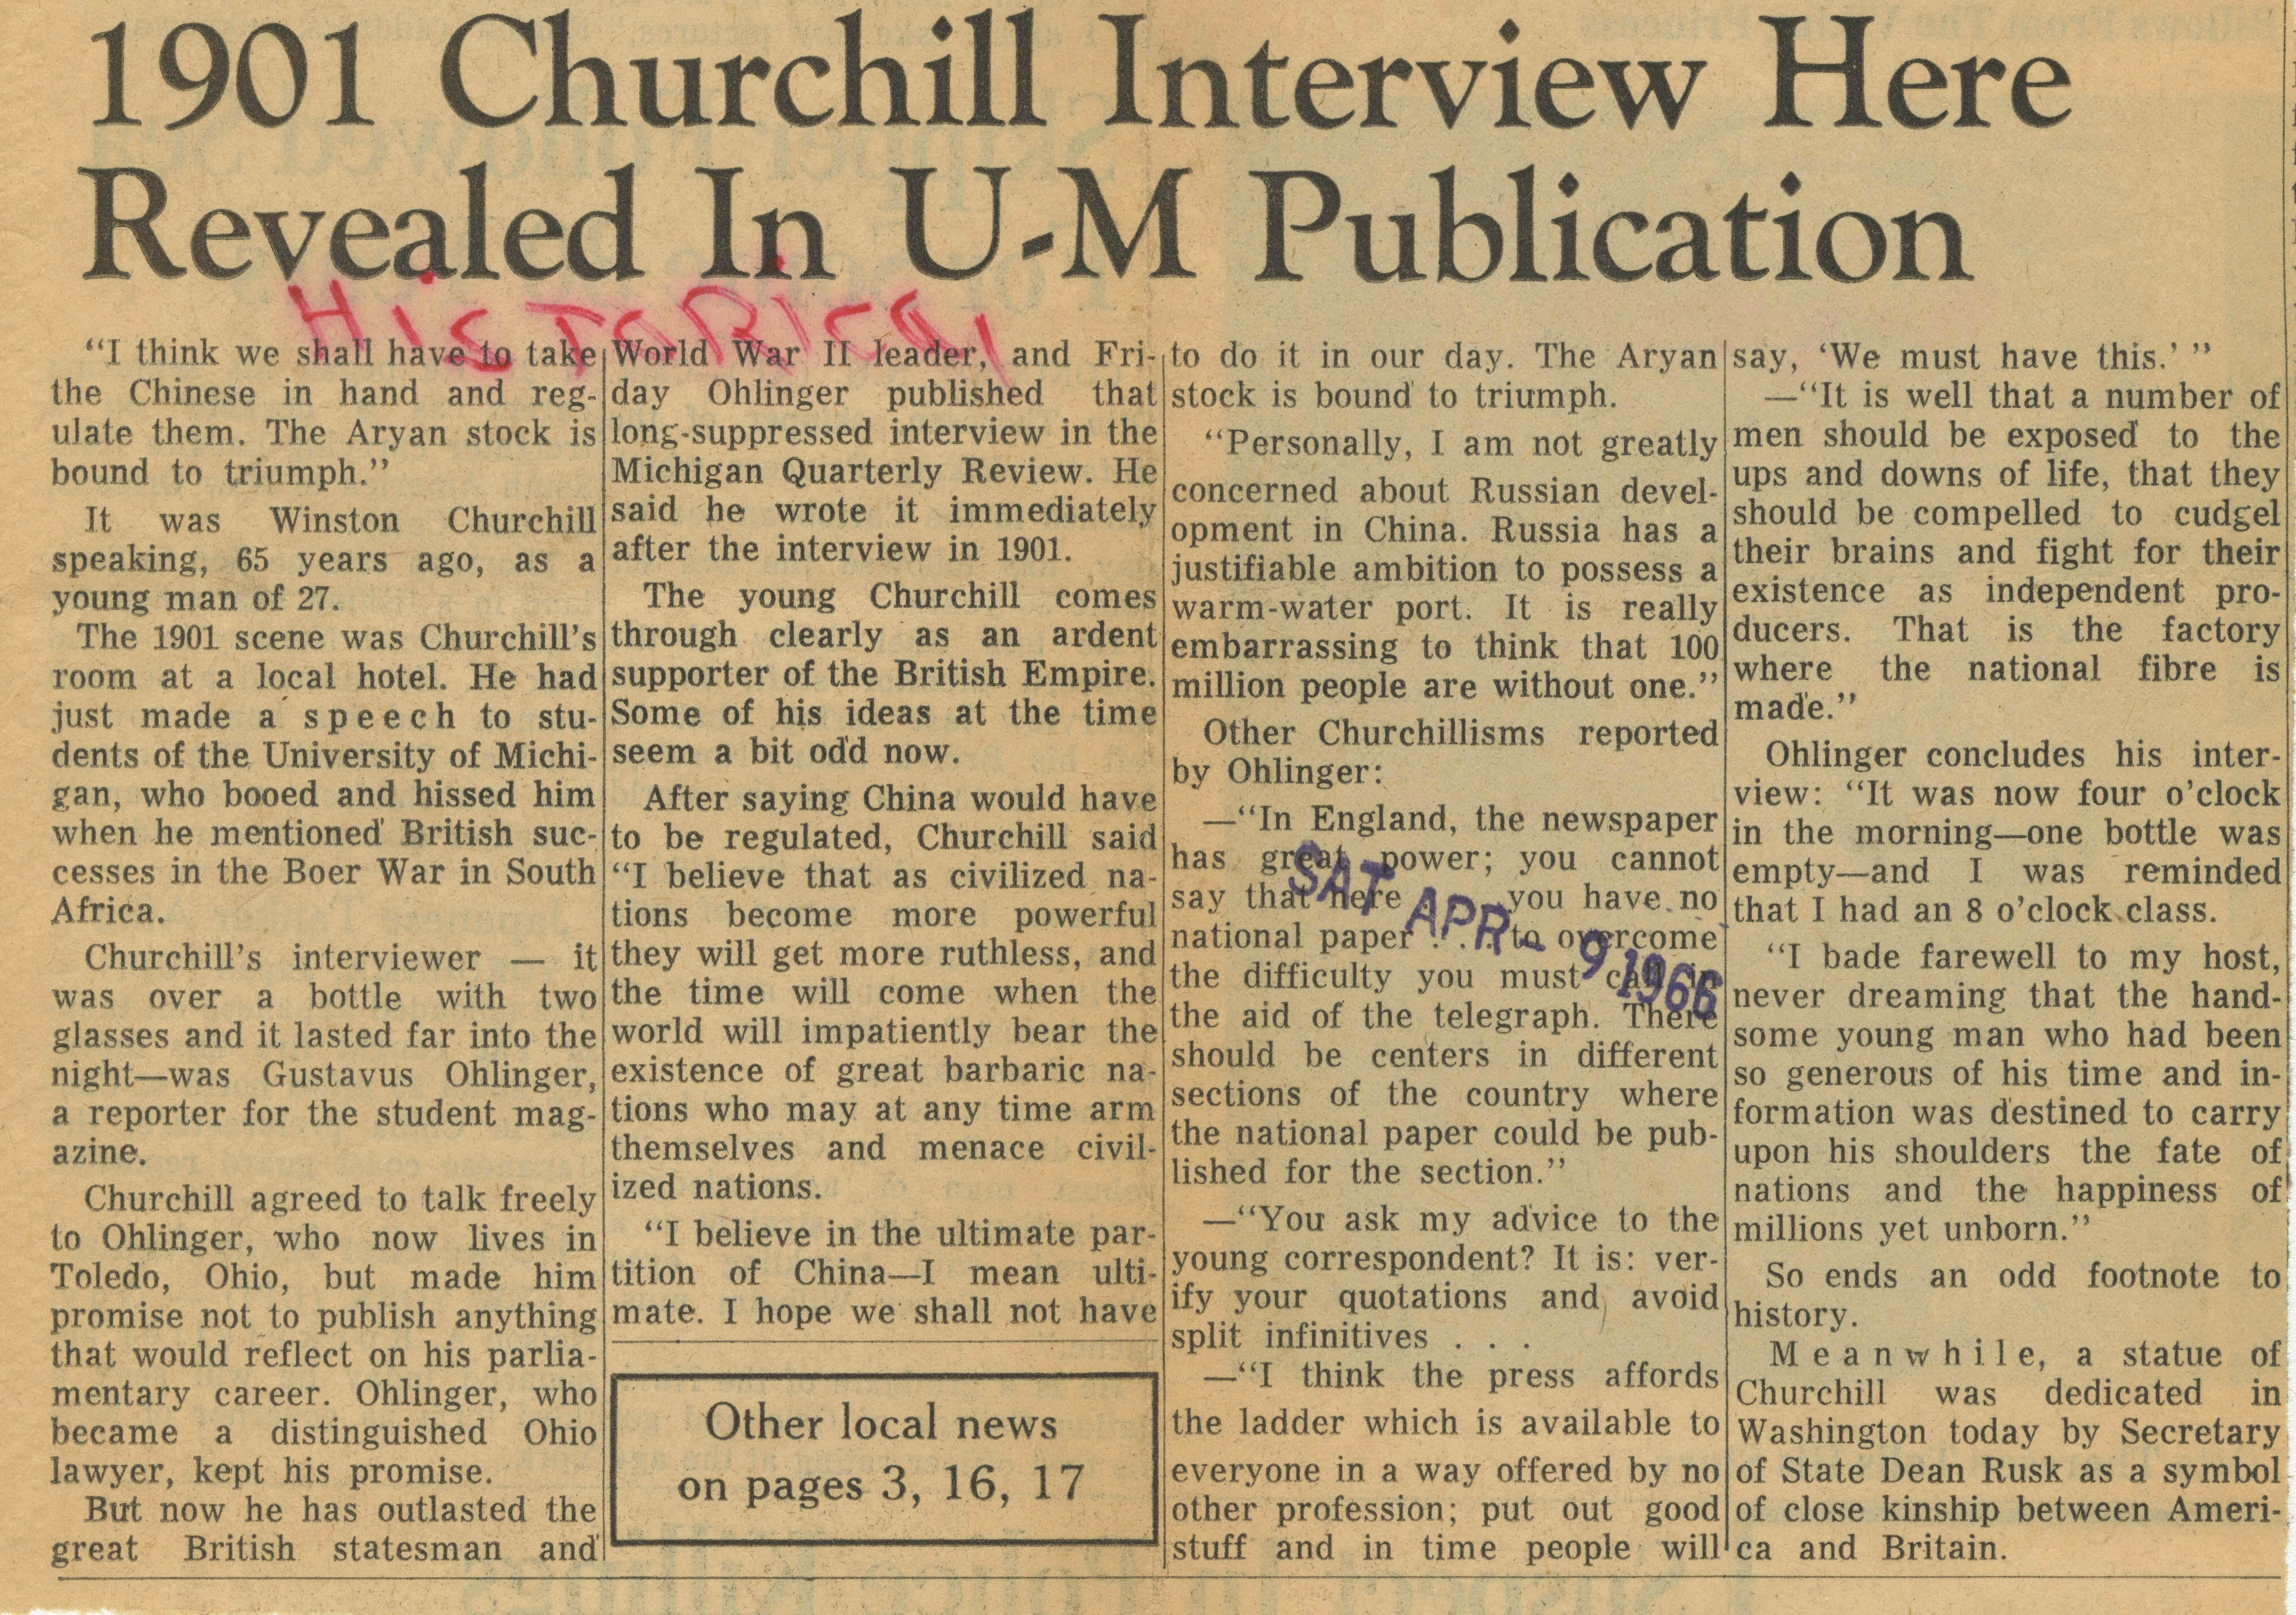 1901 Churchill Interview Here Revealed in U-M Publication image